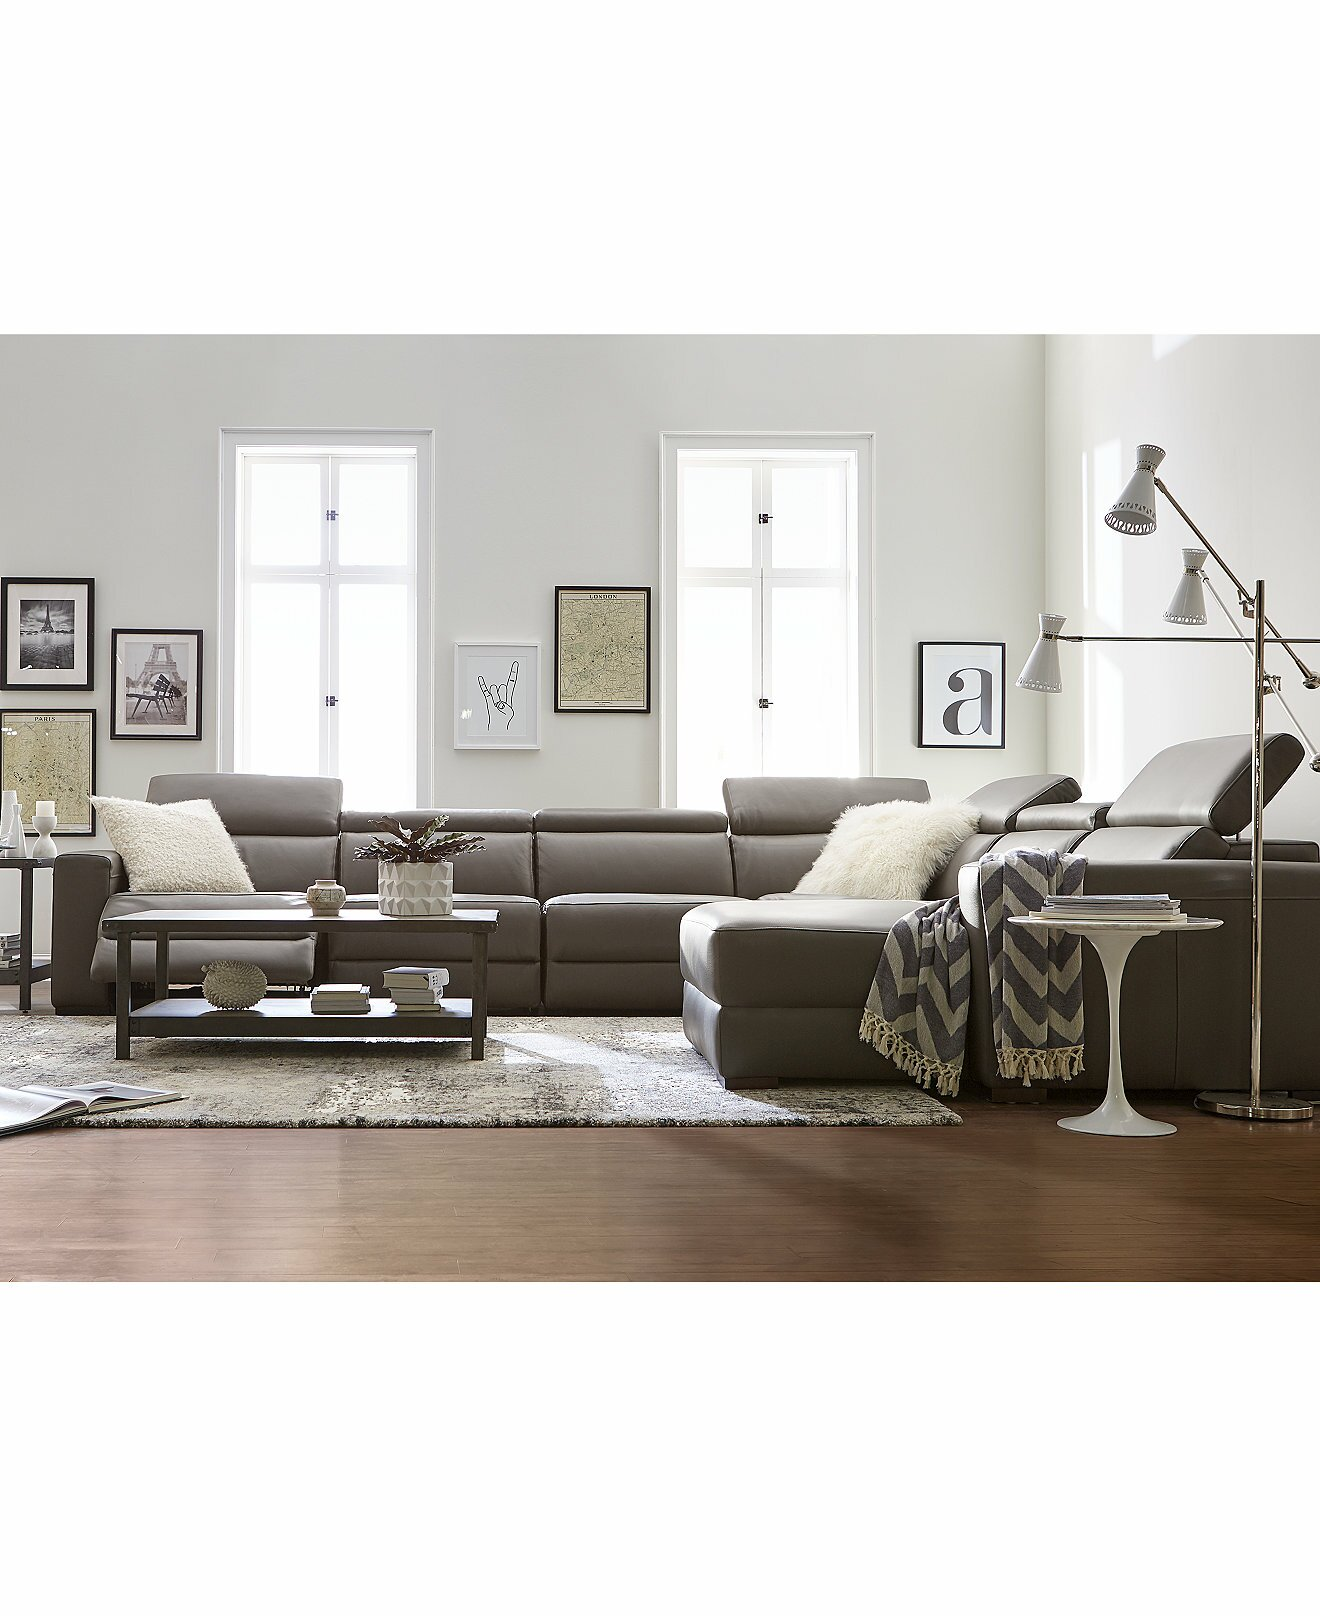 Sofas Macys Leather Furniture Macys Sectional